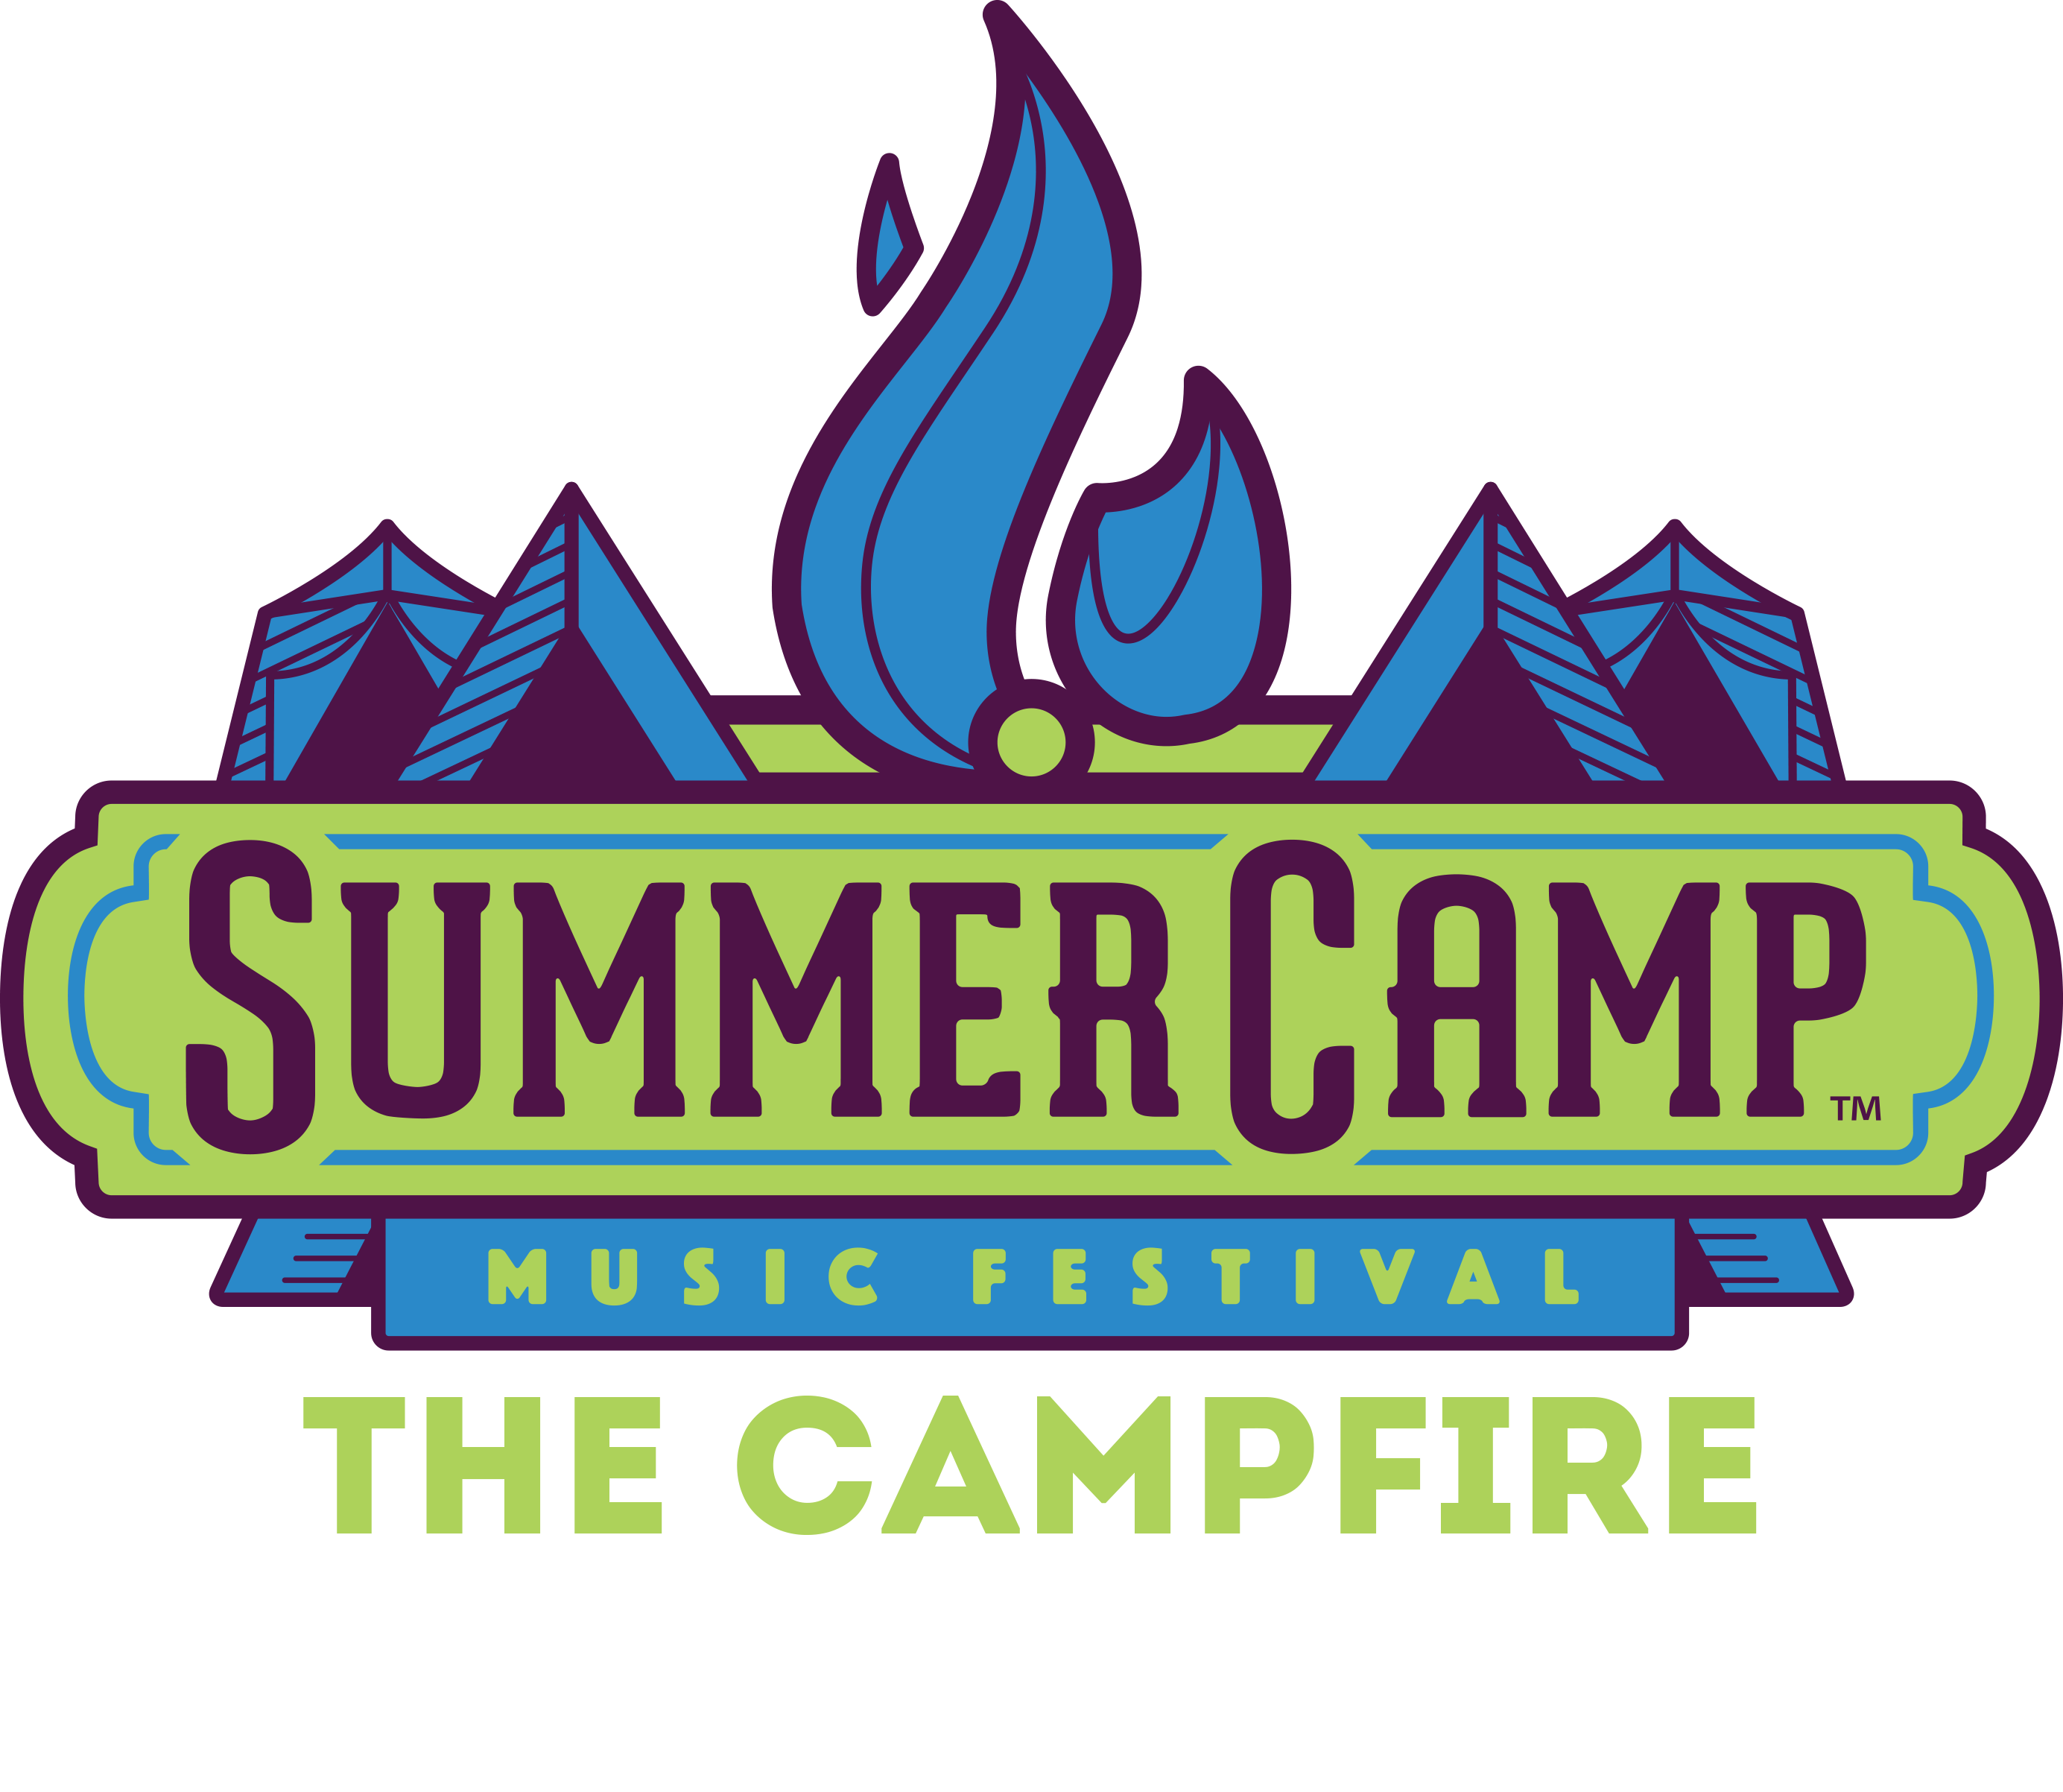 Clipart winter campfire. The at summer camp